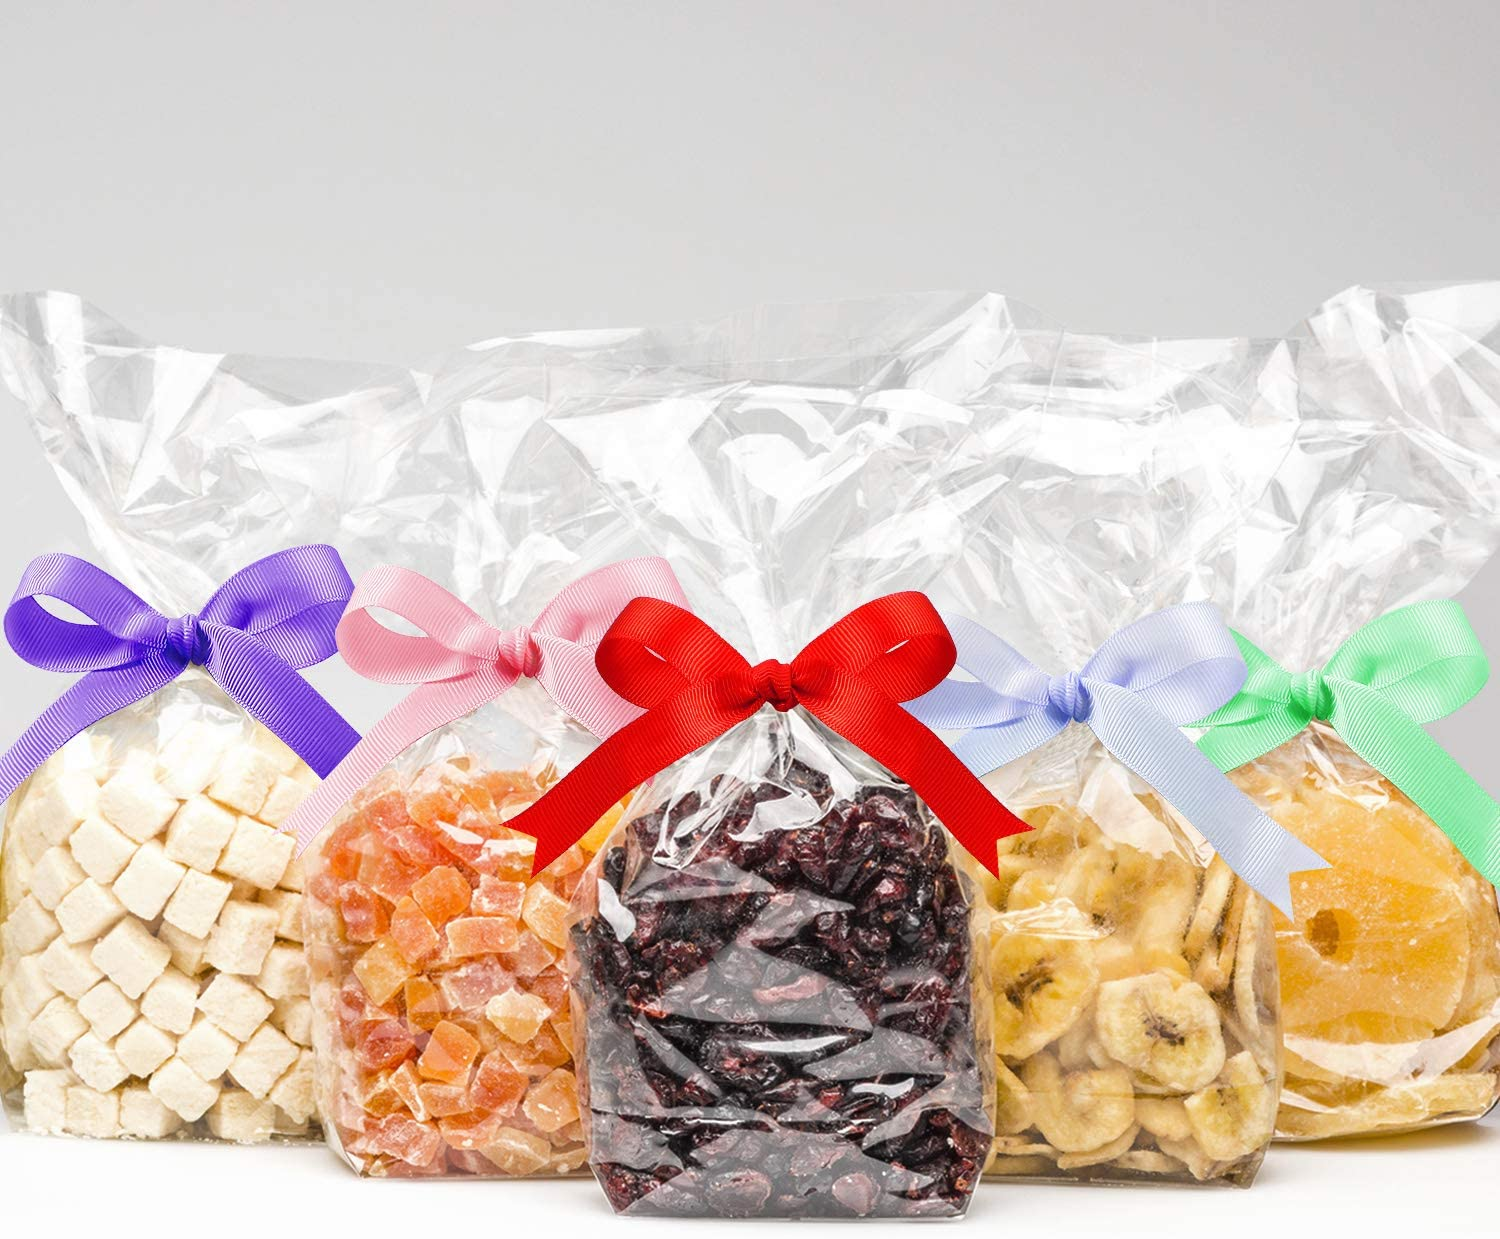 50 Counts 15 x 25 cm Clear Flat Cello Cellophane Treat Bags Cellophane Block Bottom Storage Bags Sweet/Party/Gift/Home Bags with Colorful Bag Ties (Grosgrain Ribbon)